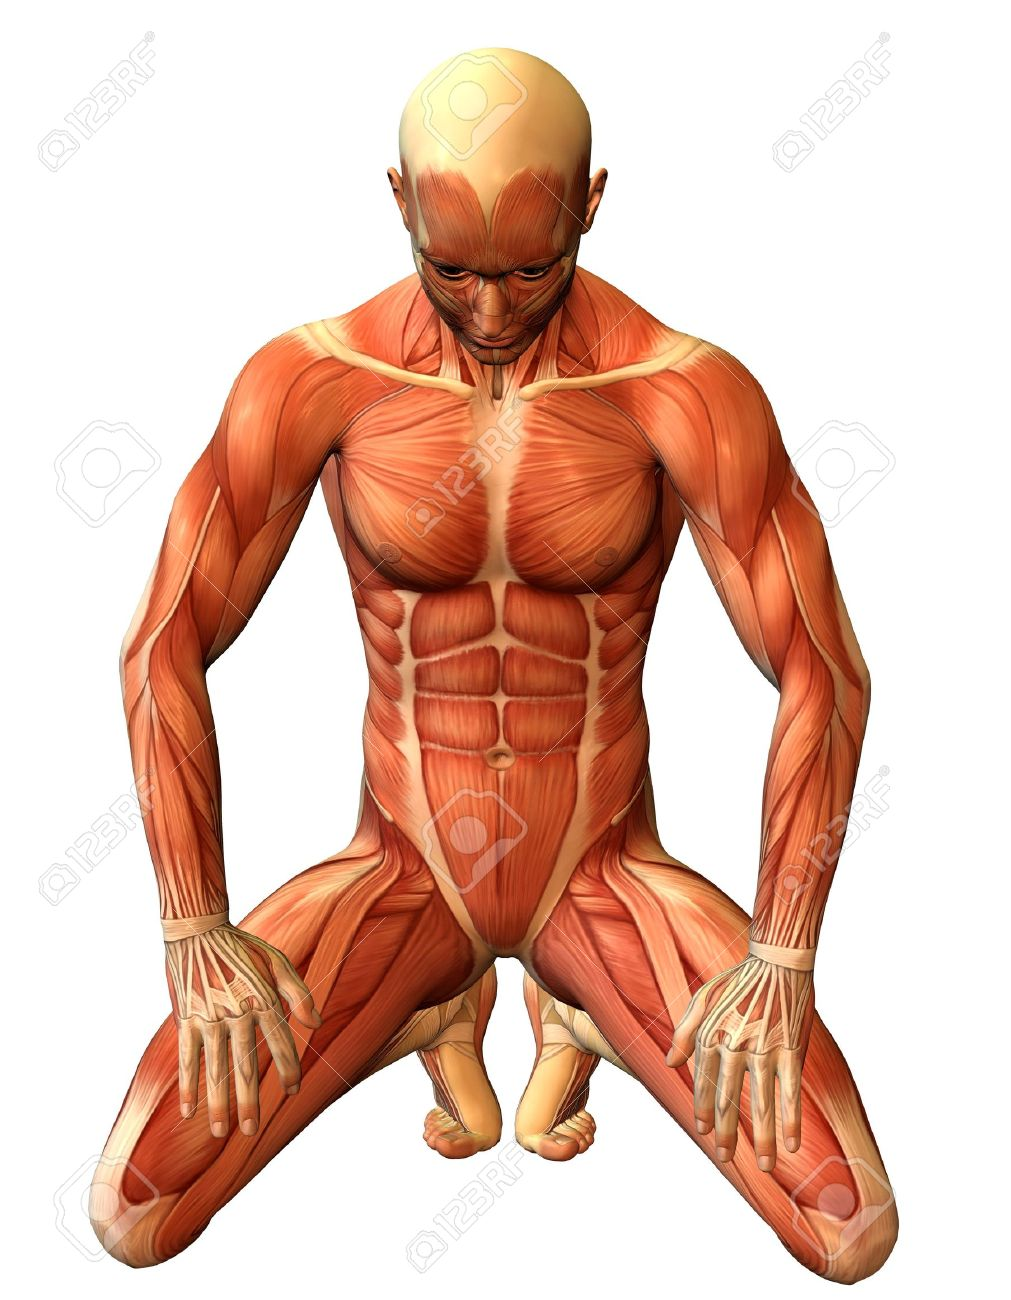 3D rendering study muscle man on his knees Stock Photo - 7877699